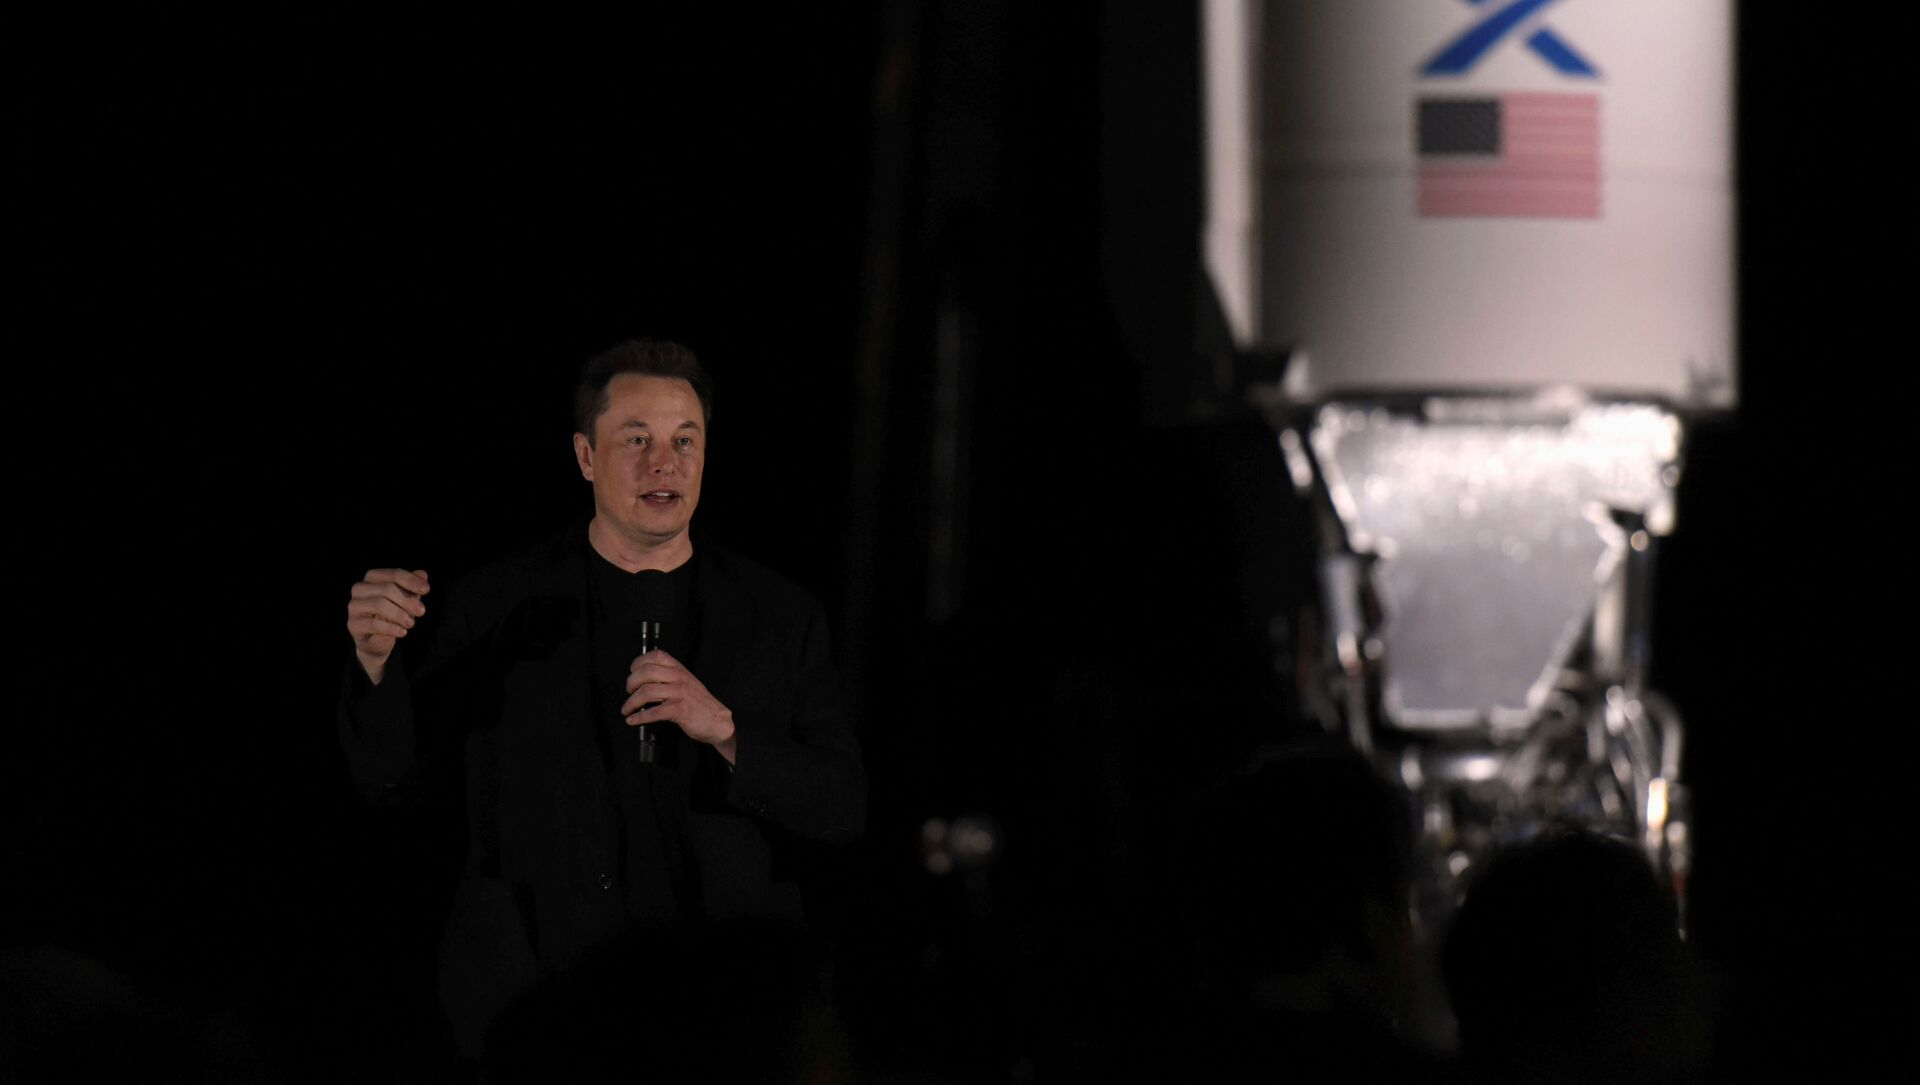 FILE PHOTO: SpaceX's Elon Musk gives an update on the company's Mars rocket Starship in Boca Chica, Texas U.S. September 28, 2019. REUTERS/Callaghan O'Hare/File Photo - Sputnik International, 1920, 04.08.2021